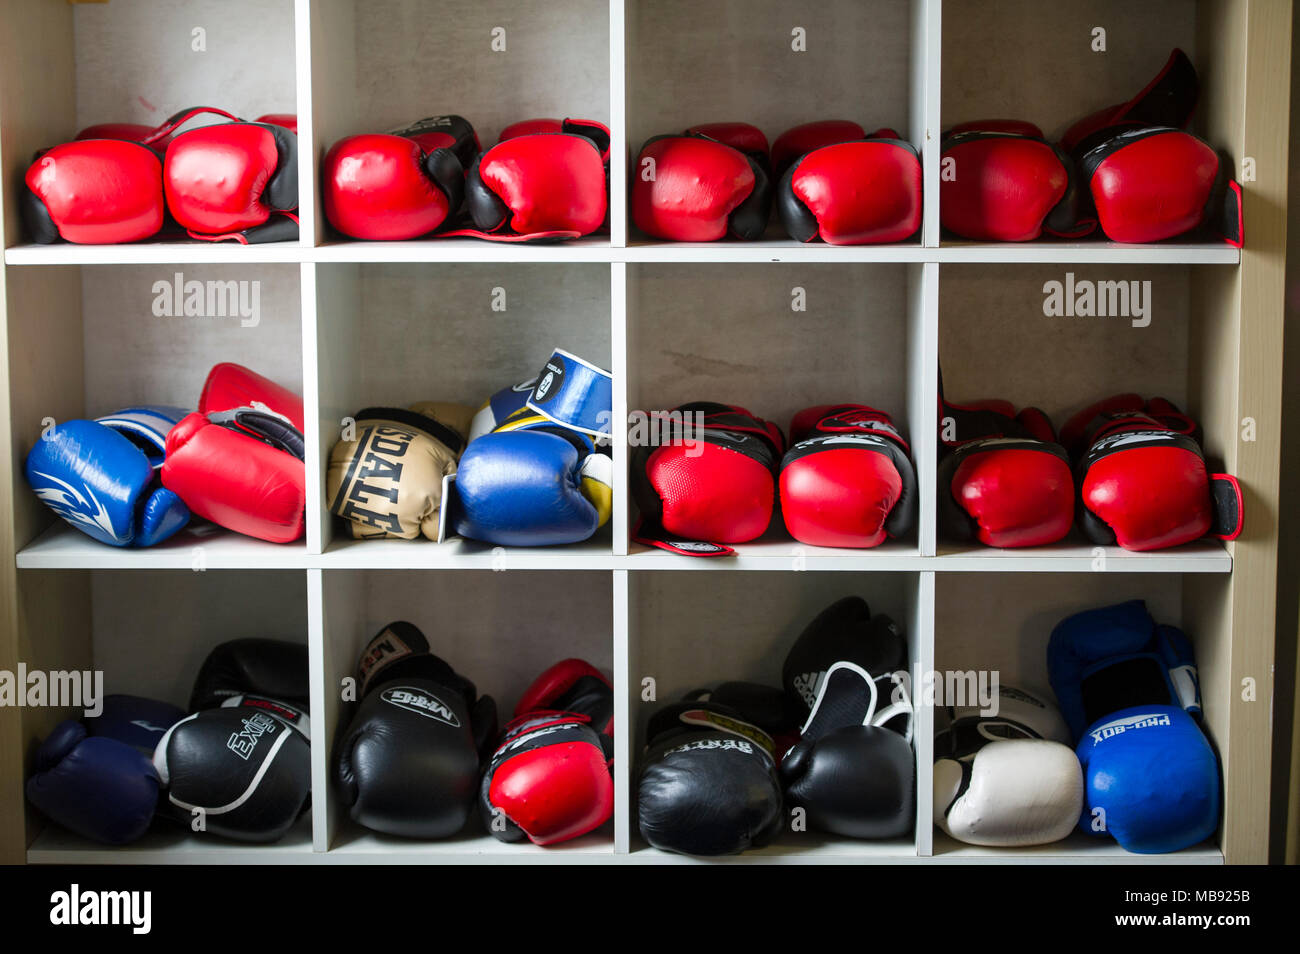 Various colourful boxing gloves stored on shelves in a boxing gymnasium. - Stock Image